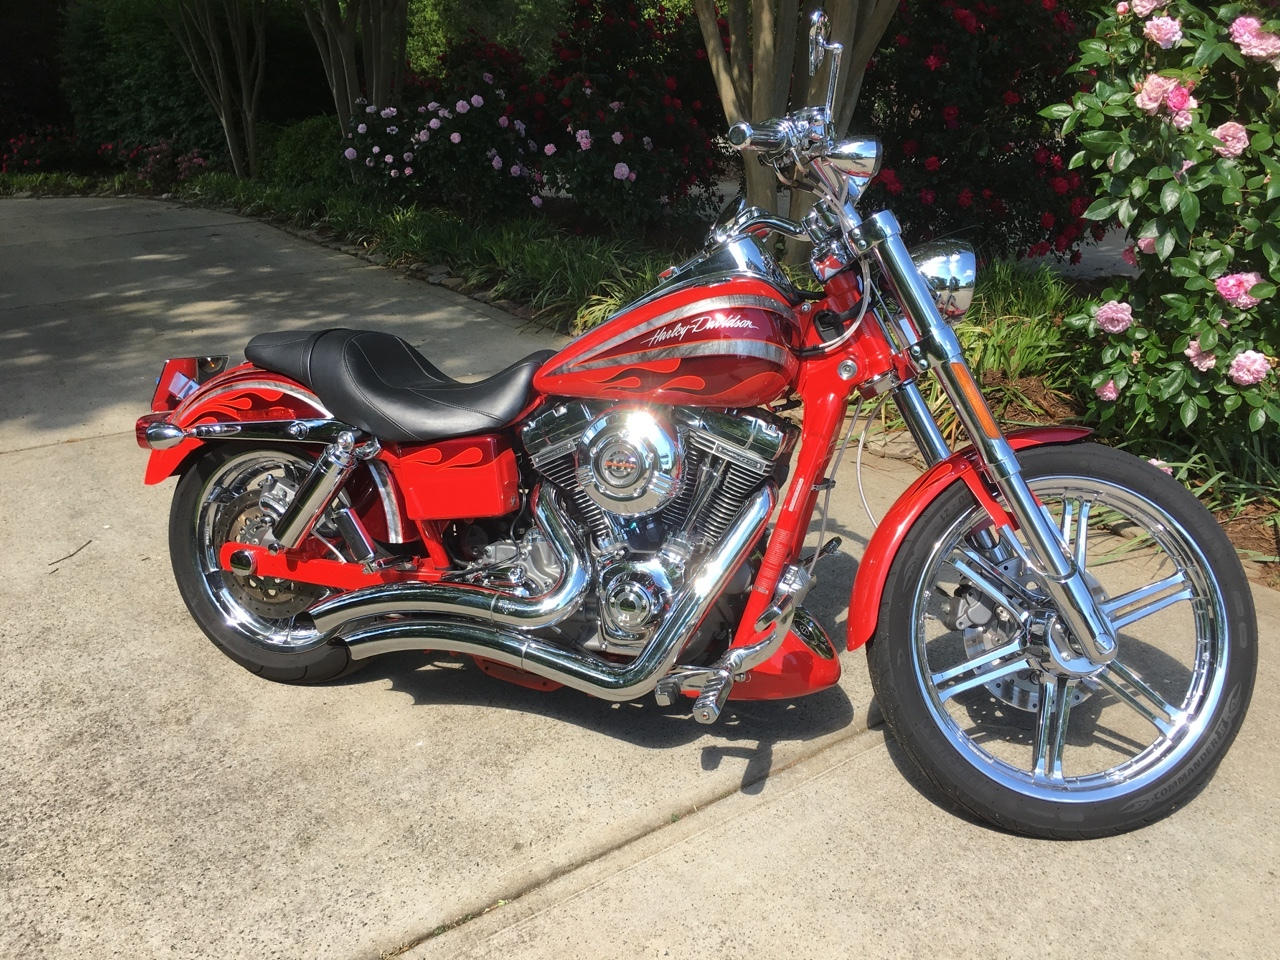 Dyna For Sale - S Motorcycle,528553,1049211046,1049212410